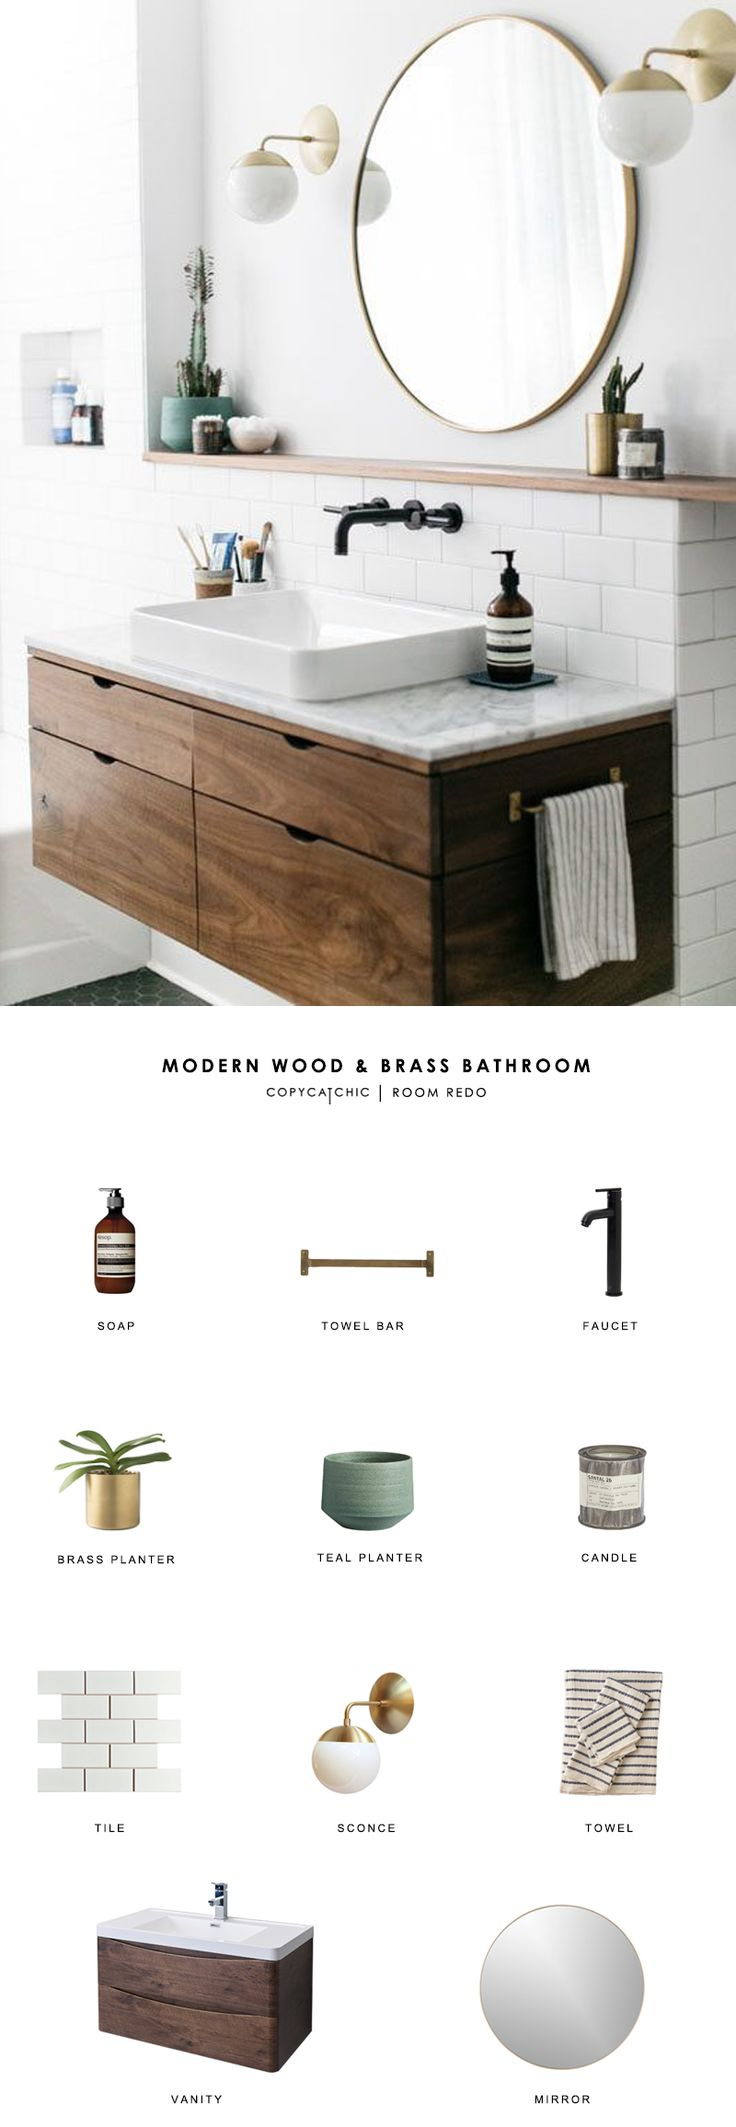 753 best Bathroom Makeover Ideas images on Pinterest | Bathrooms ...